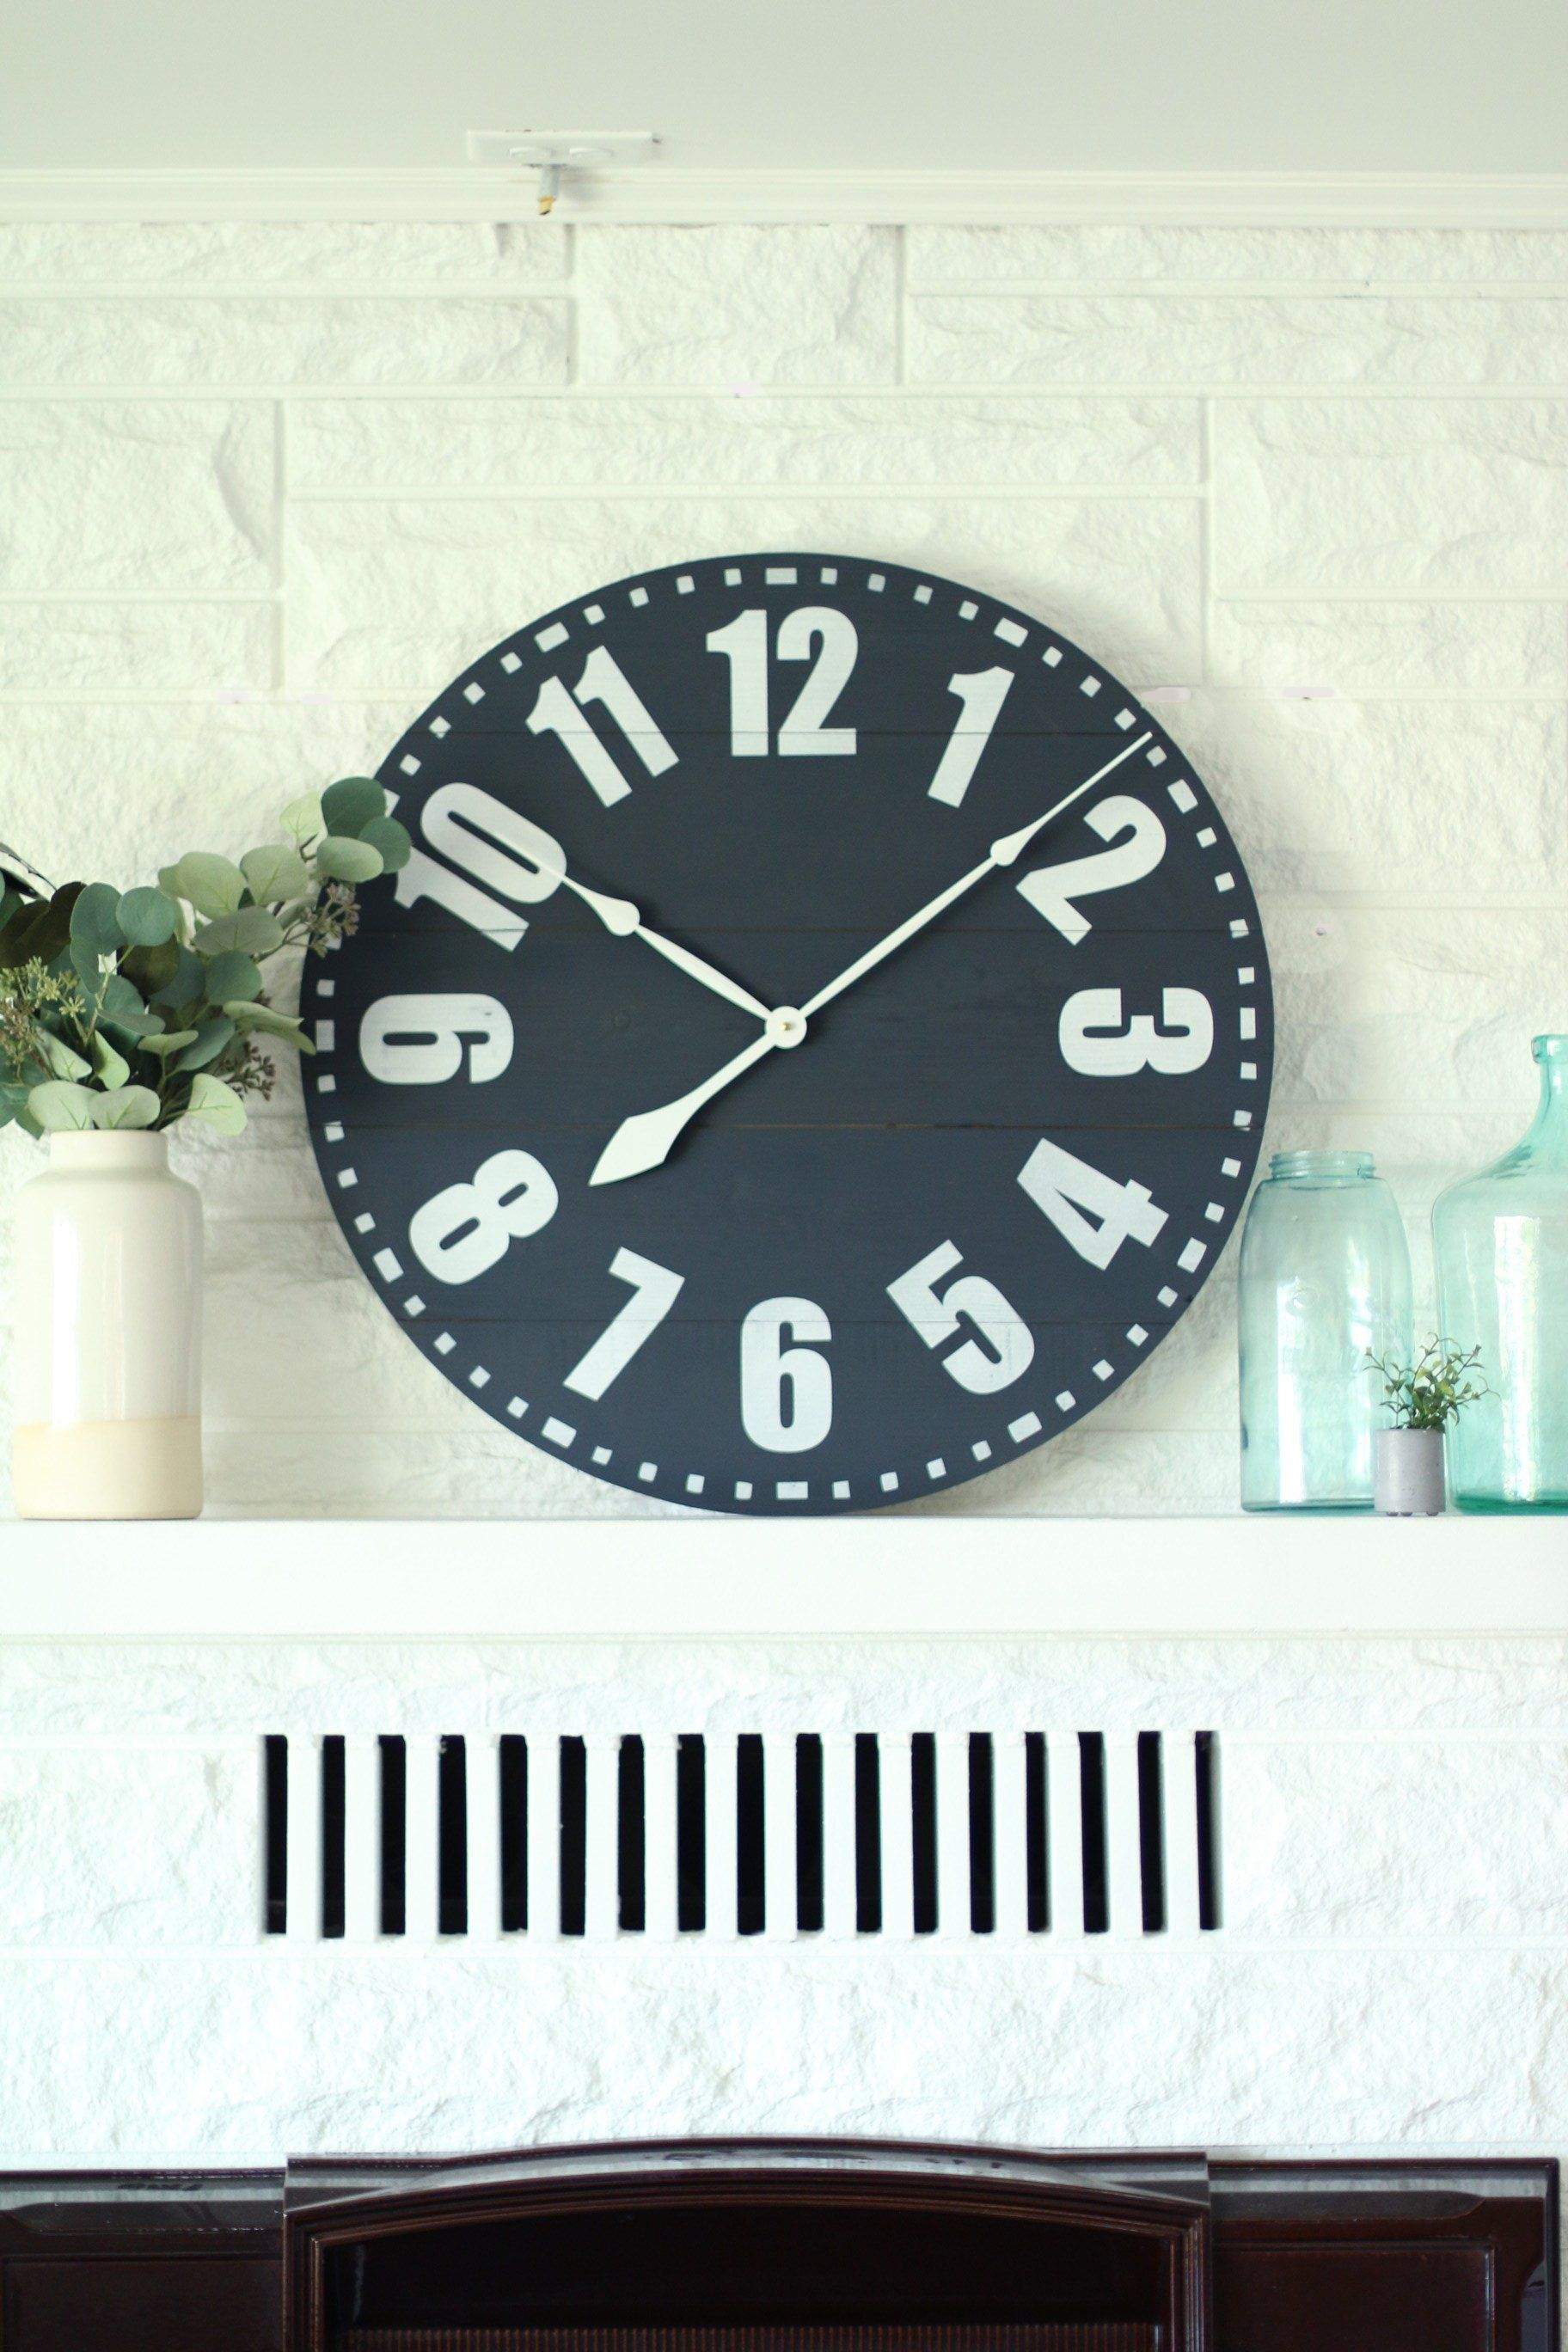 25 30 bentley in navy clock with numbers farmhouse wall decor